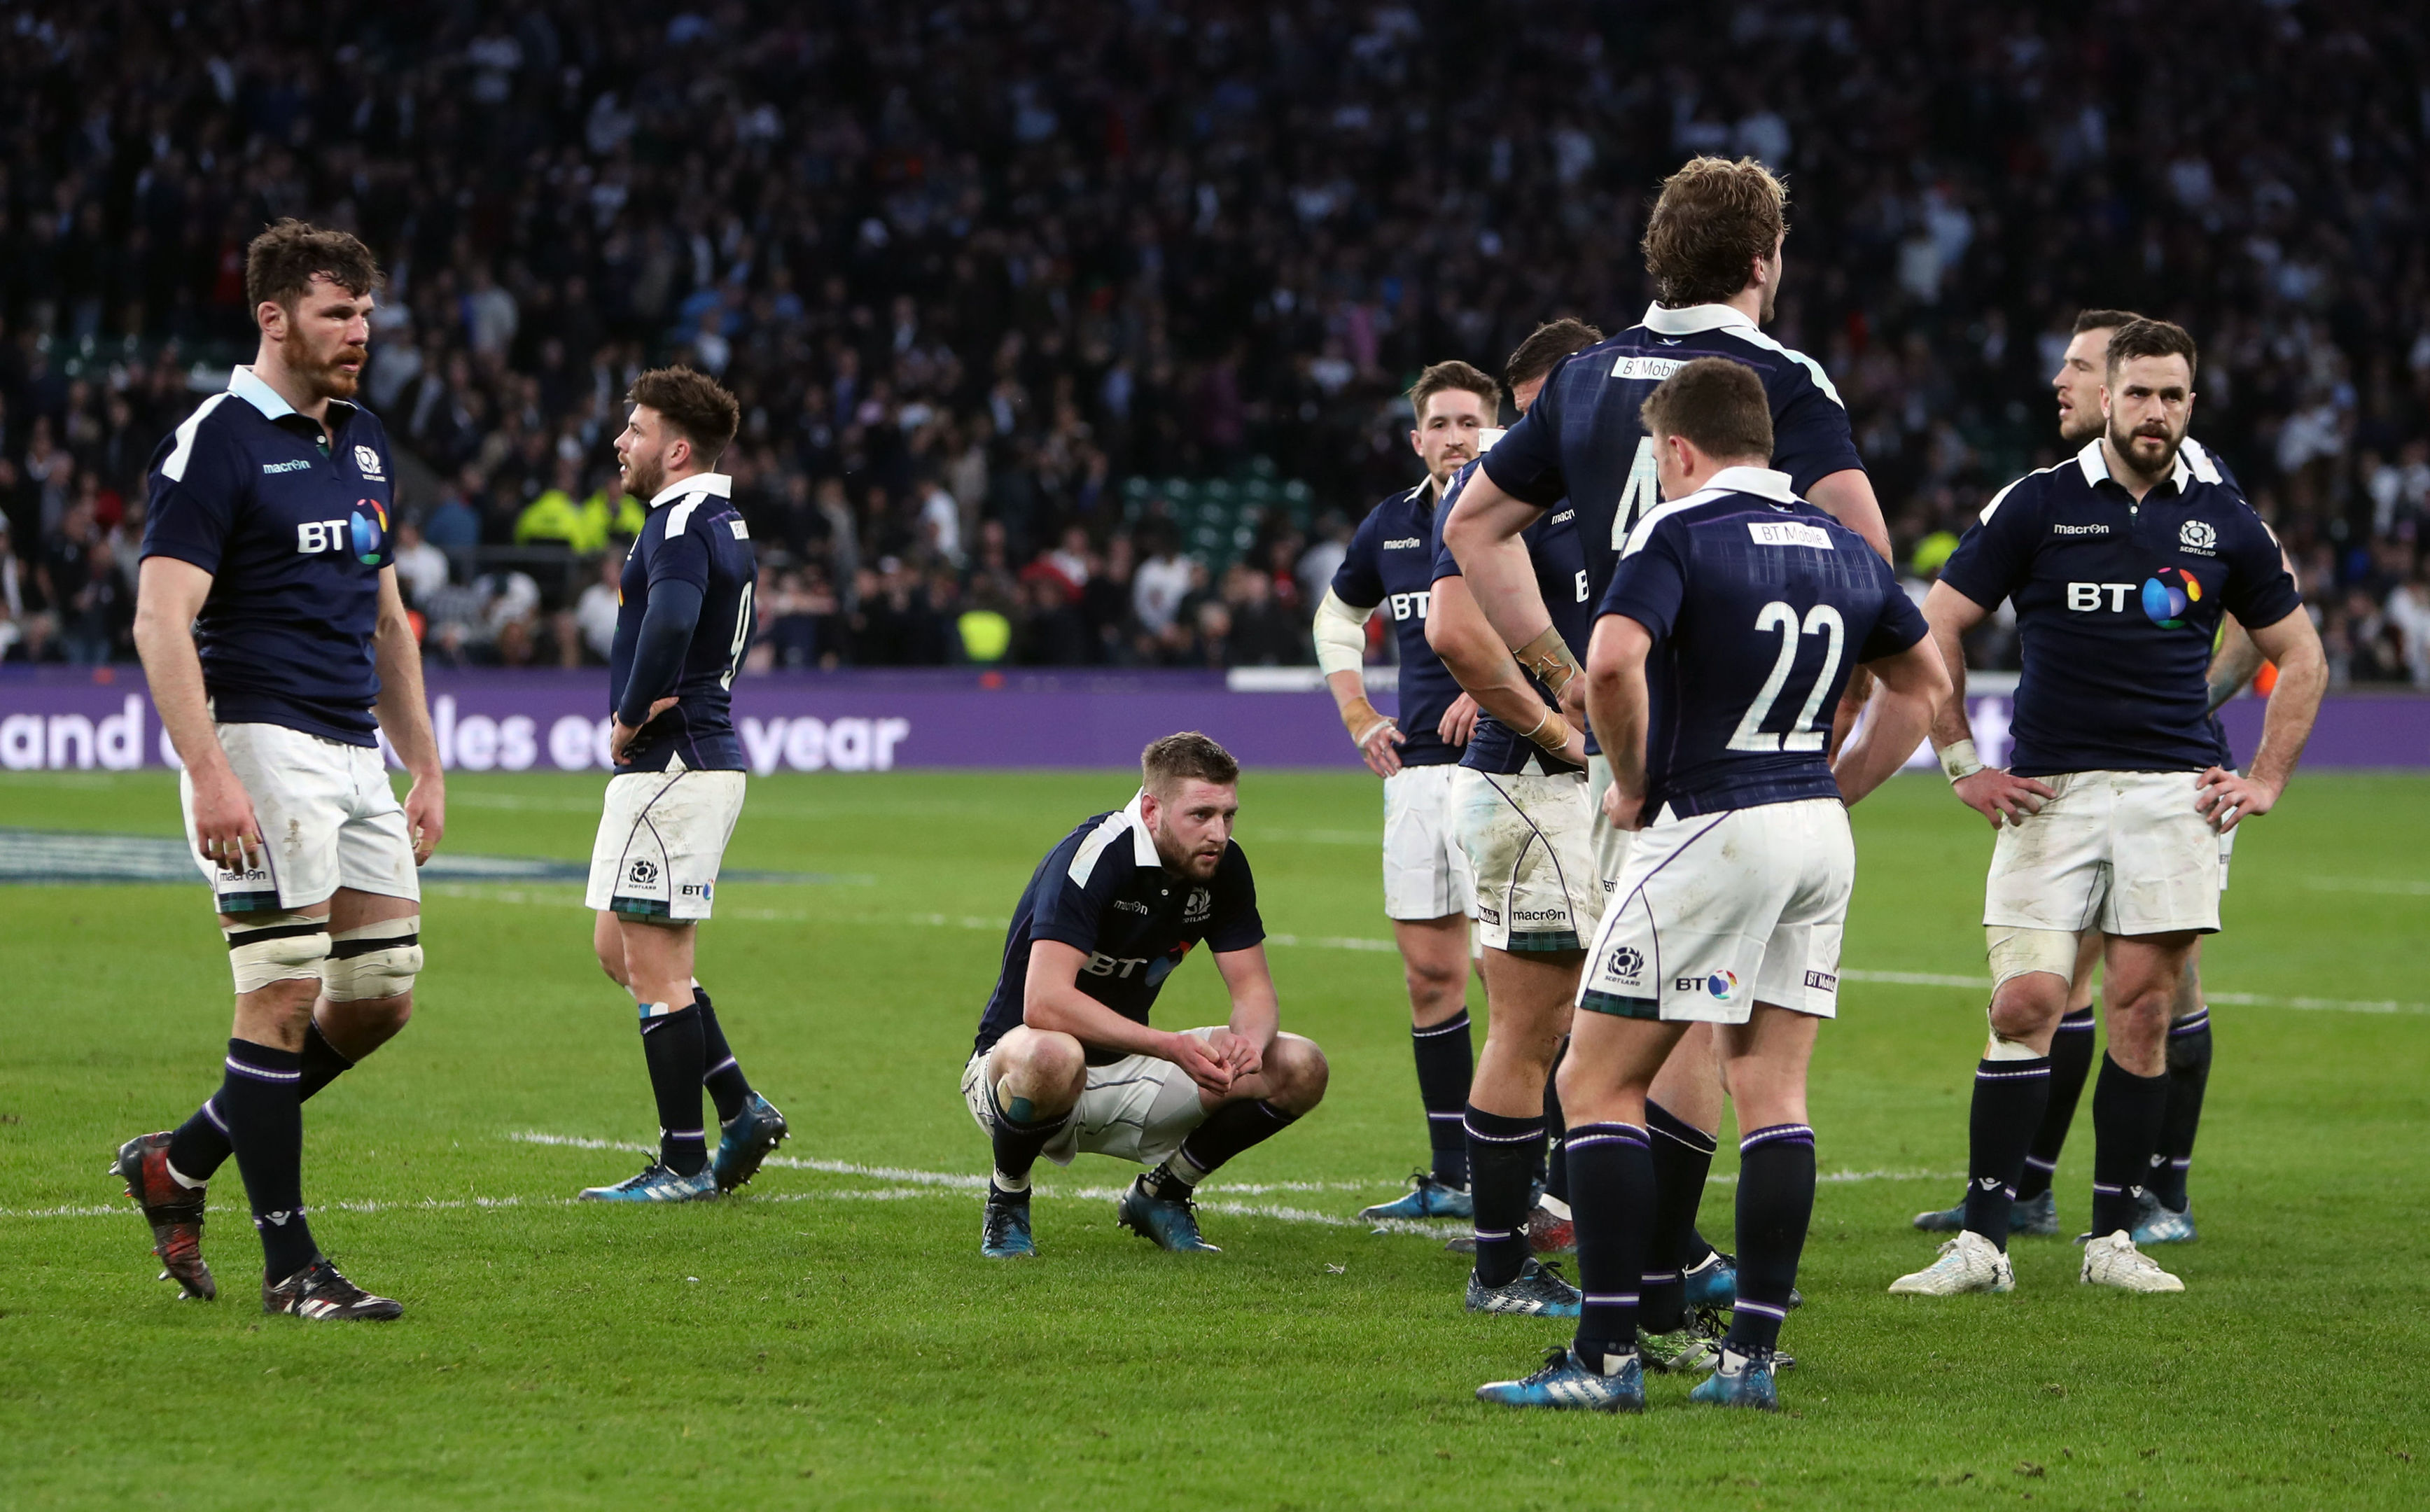 Dejected Scottish players at the end of Saturday's 61-21 defeat at Twickenham.